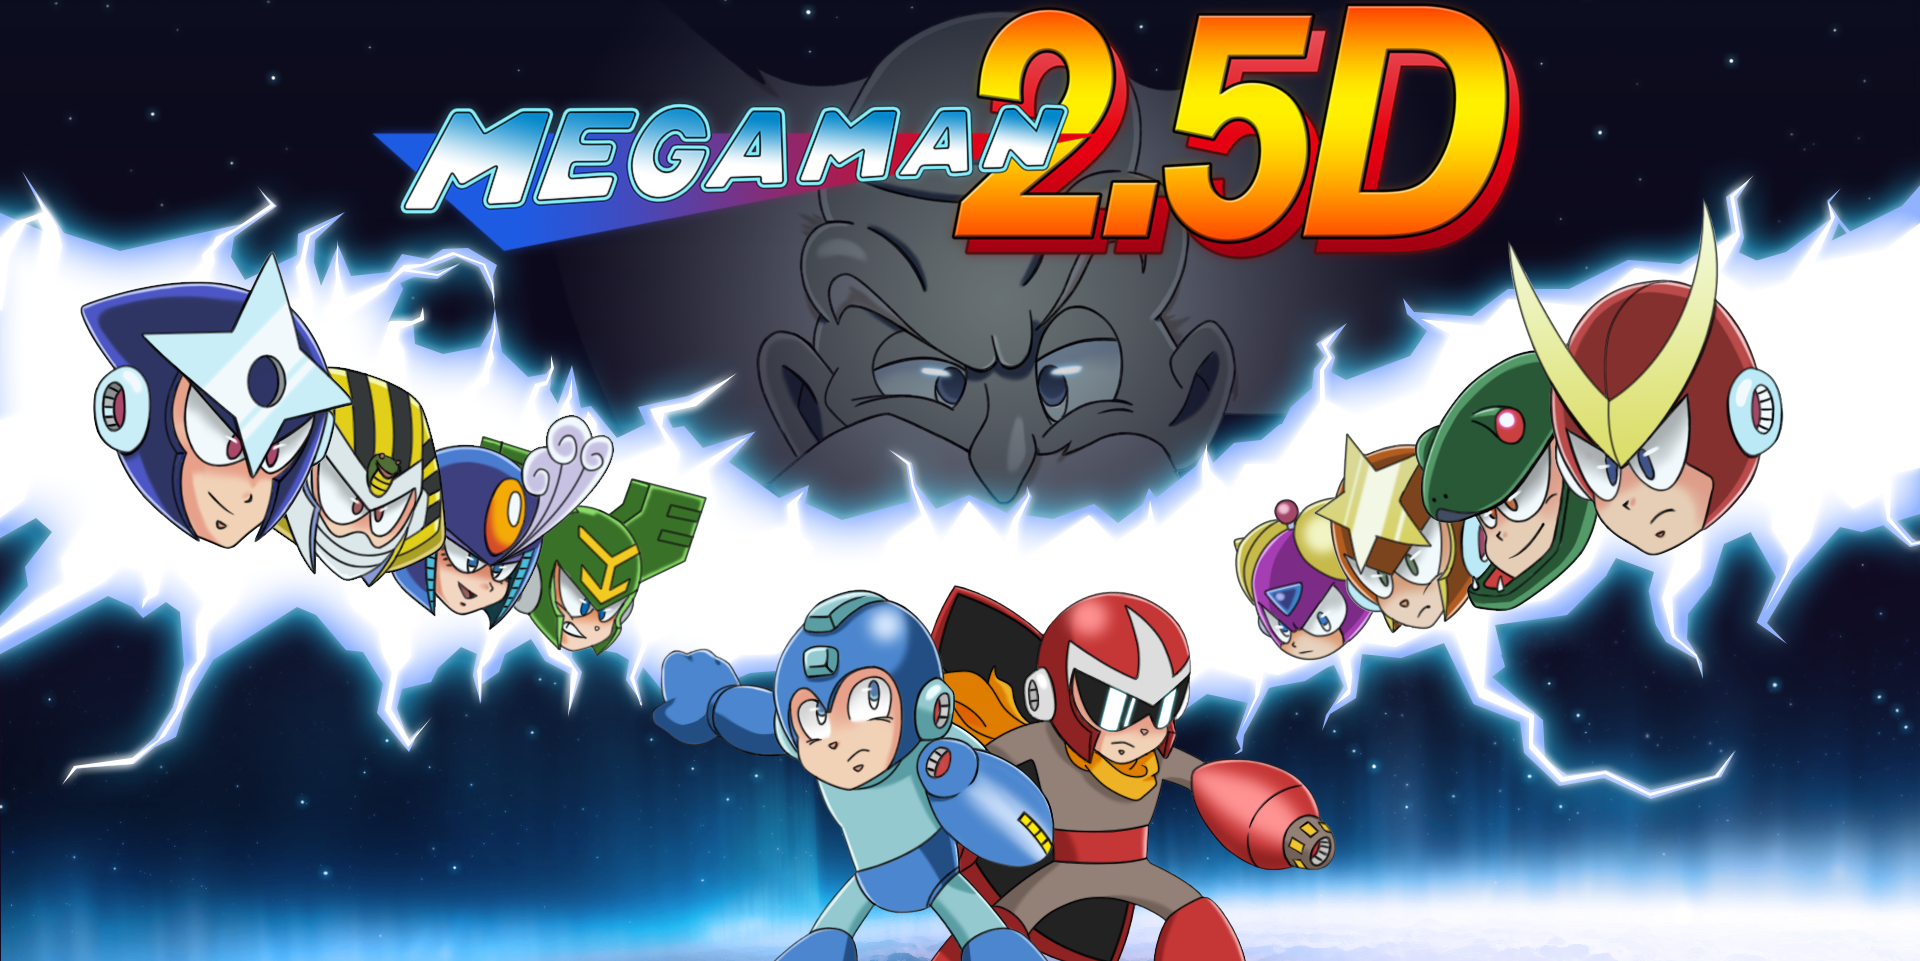 mega_man_25d_1_0_promo_artwork